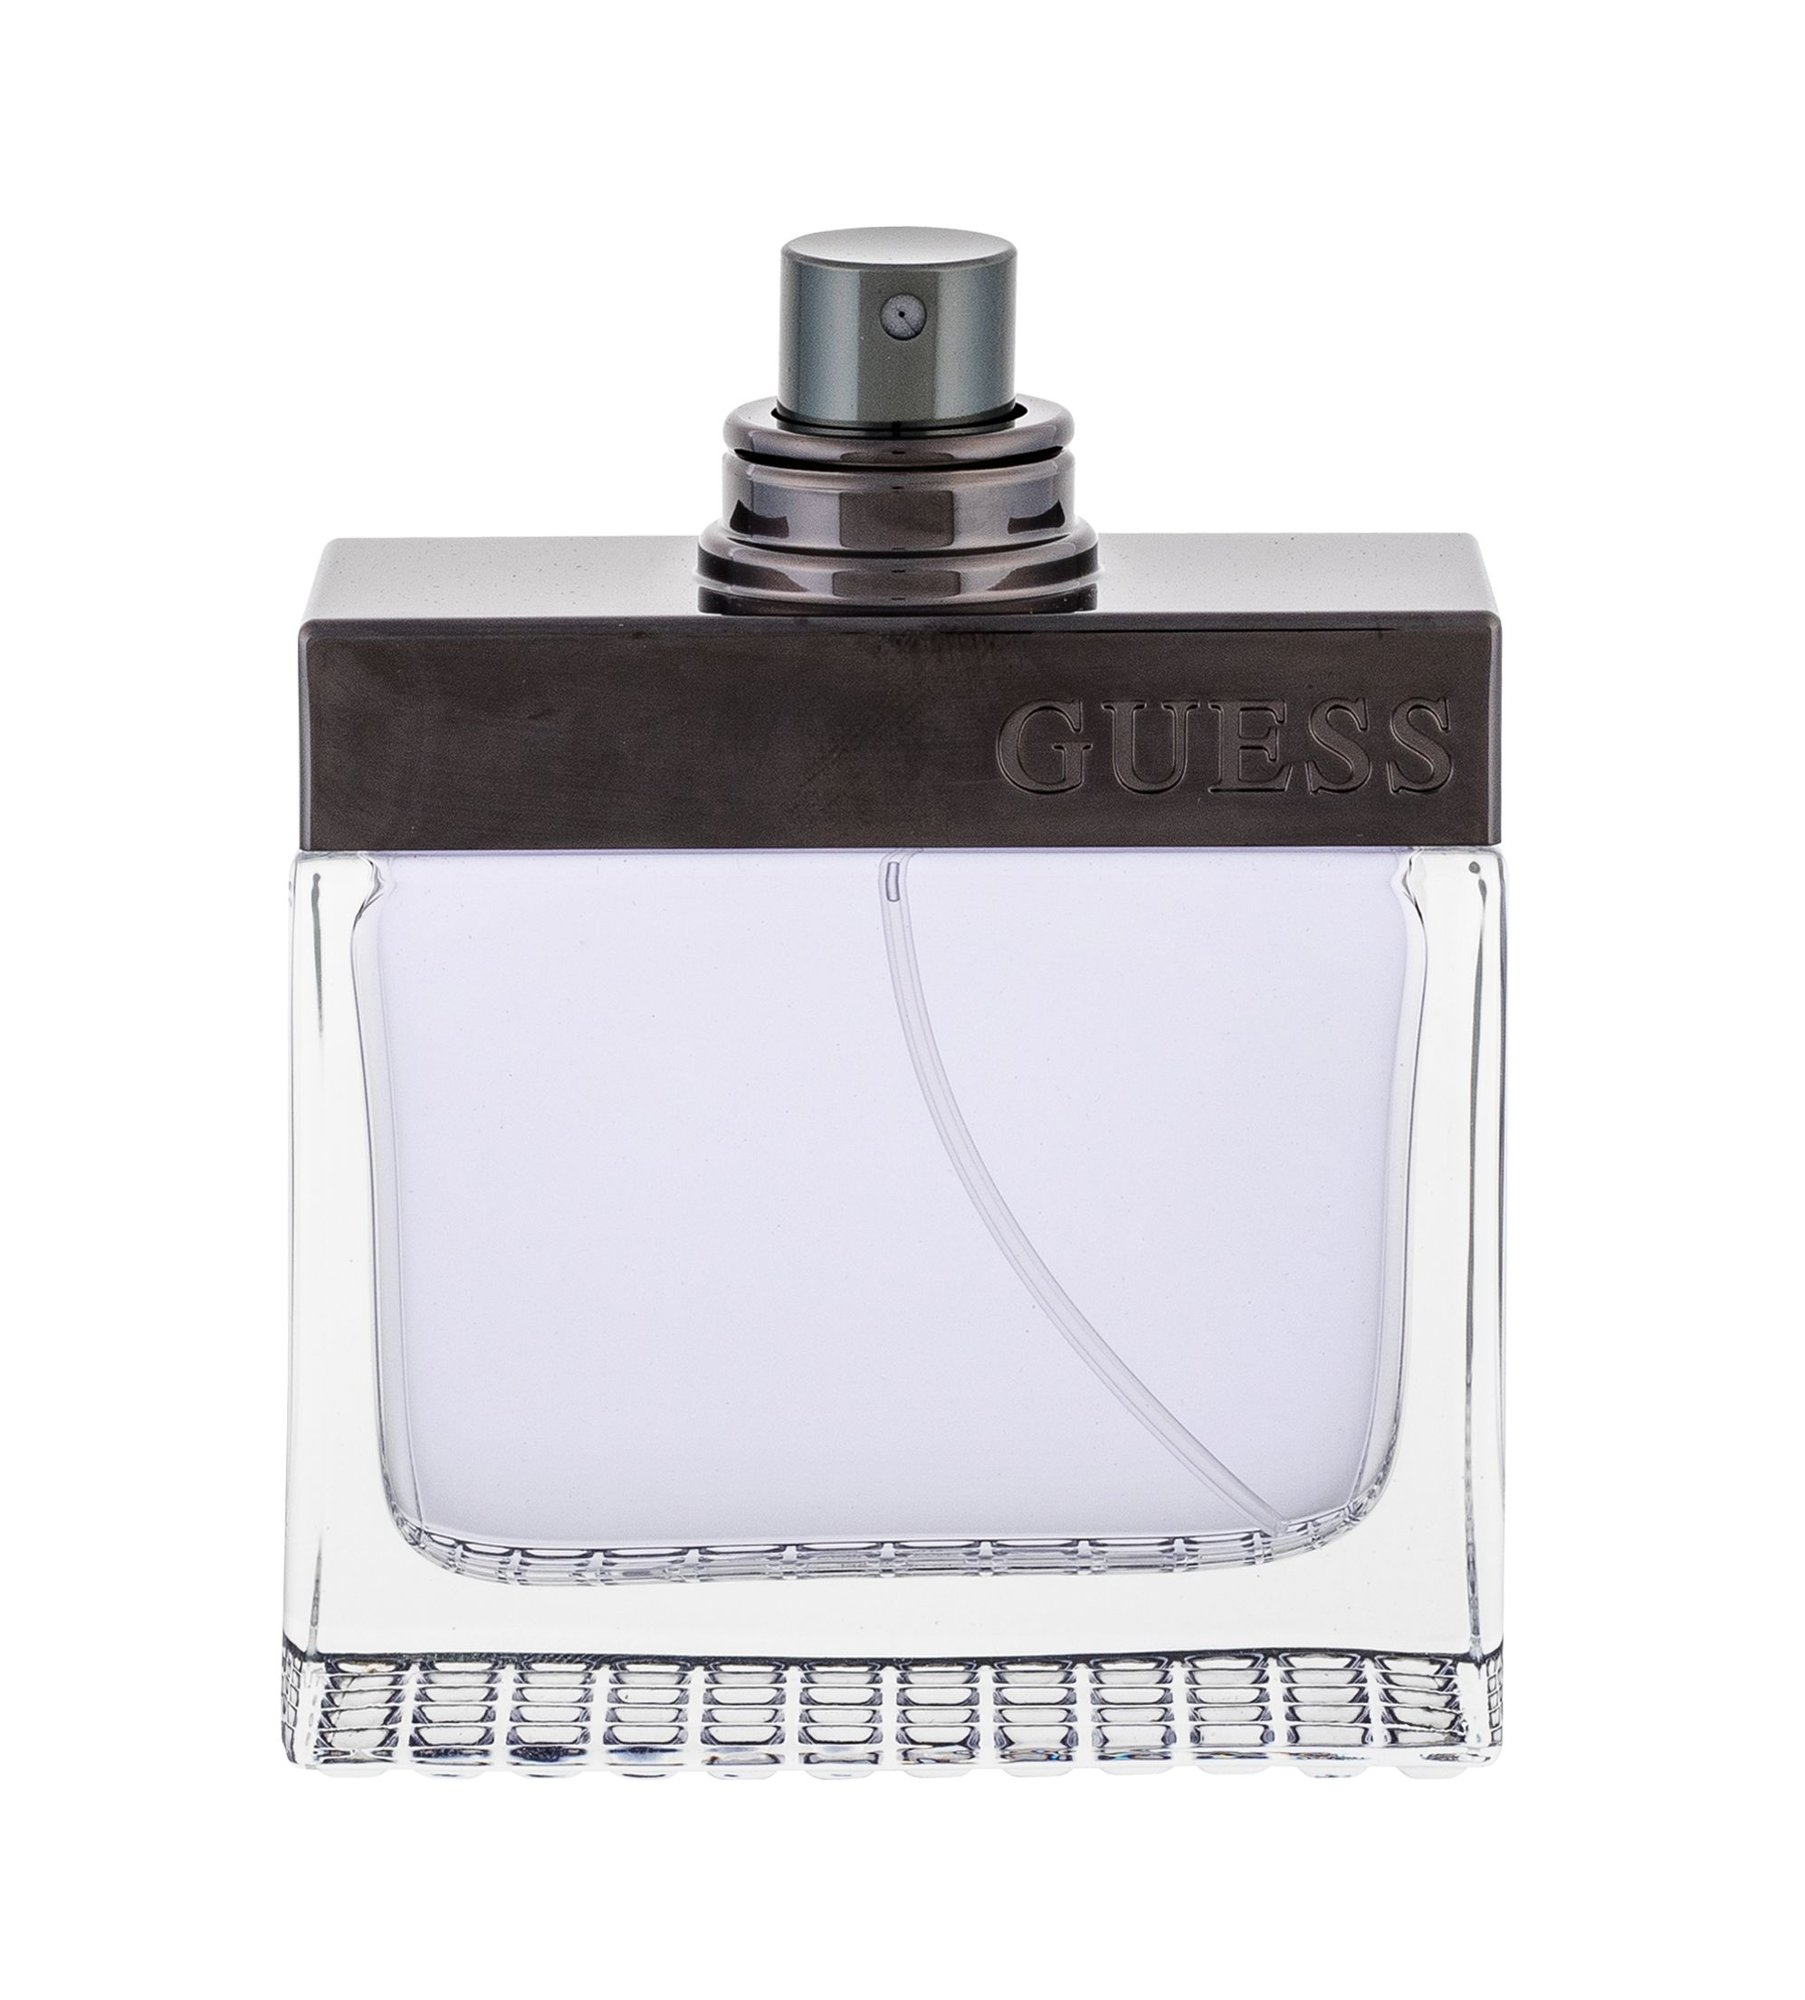 GUESS Seductive Eau de Toilette 50ml